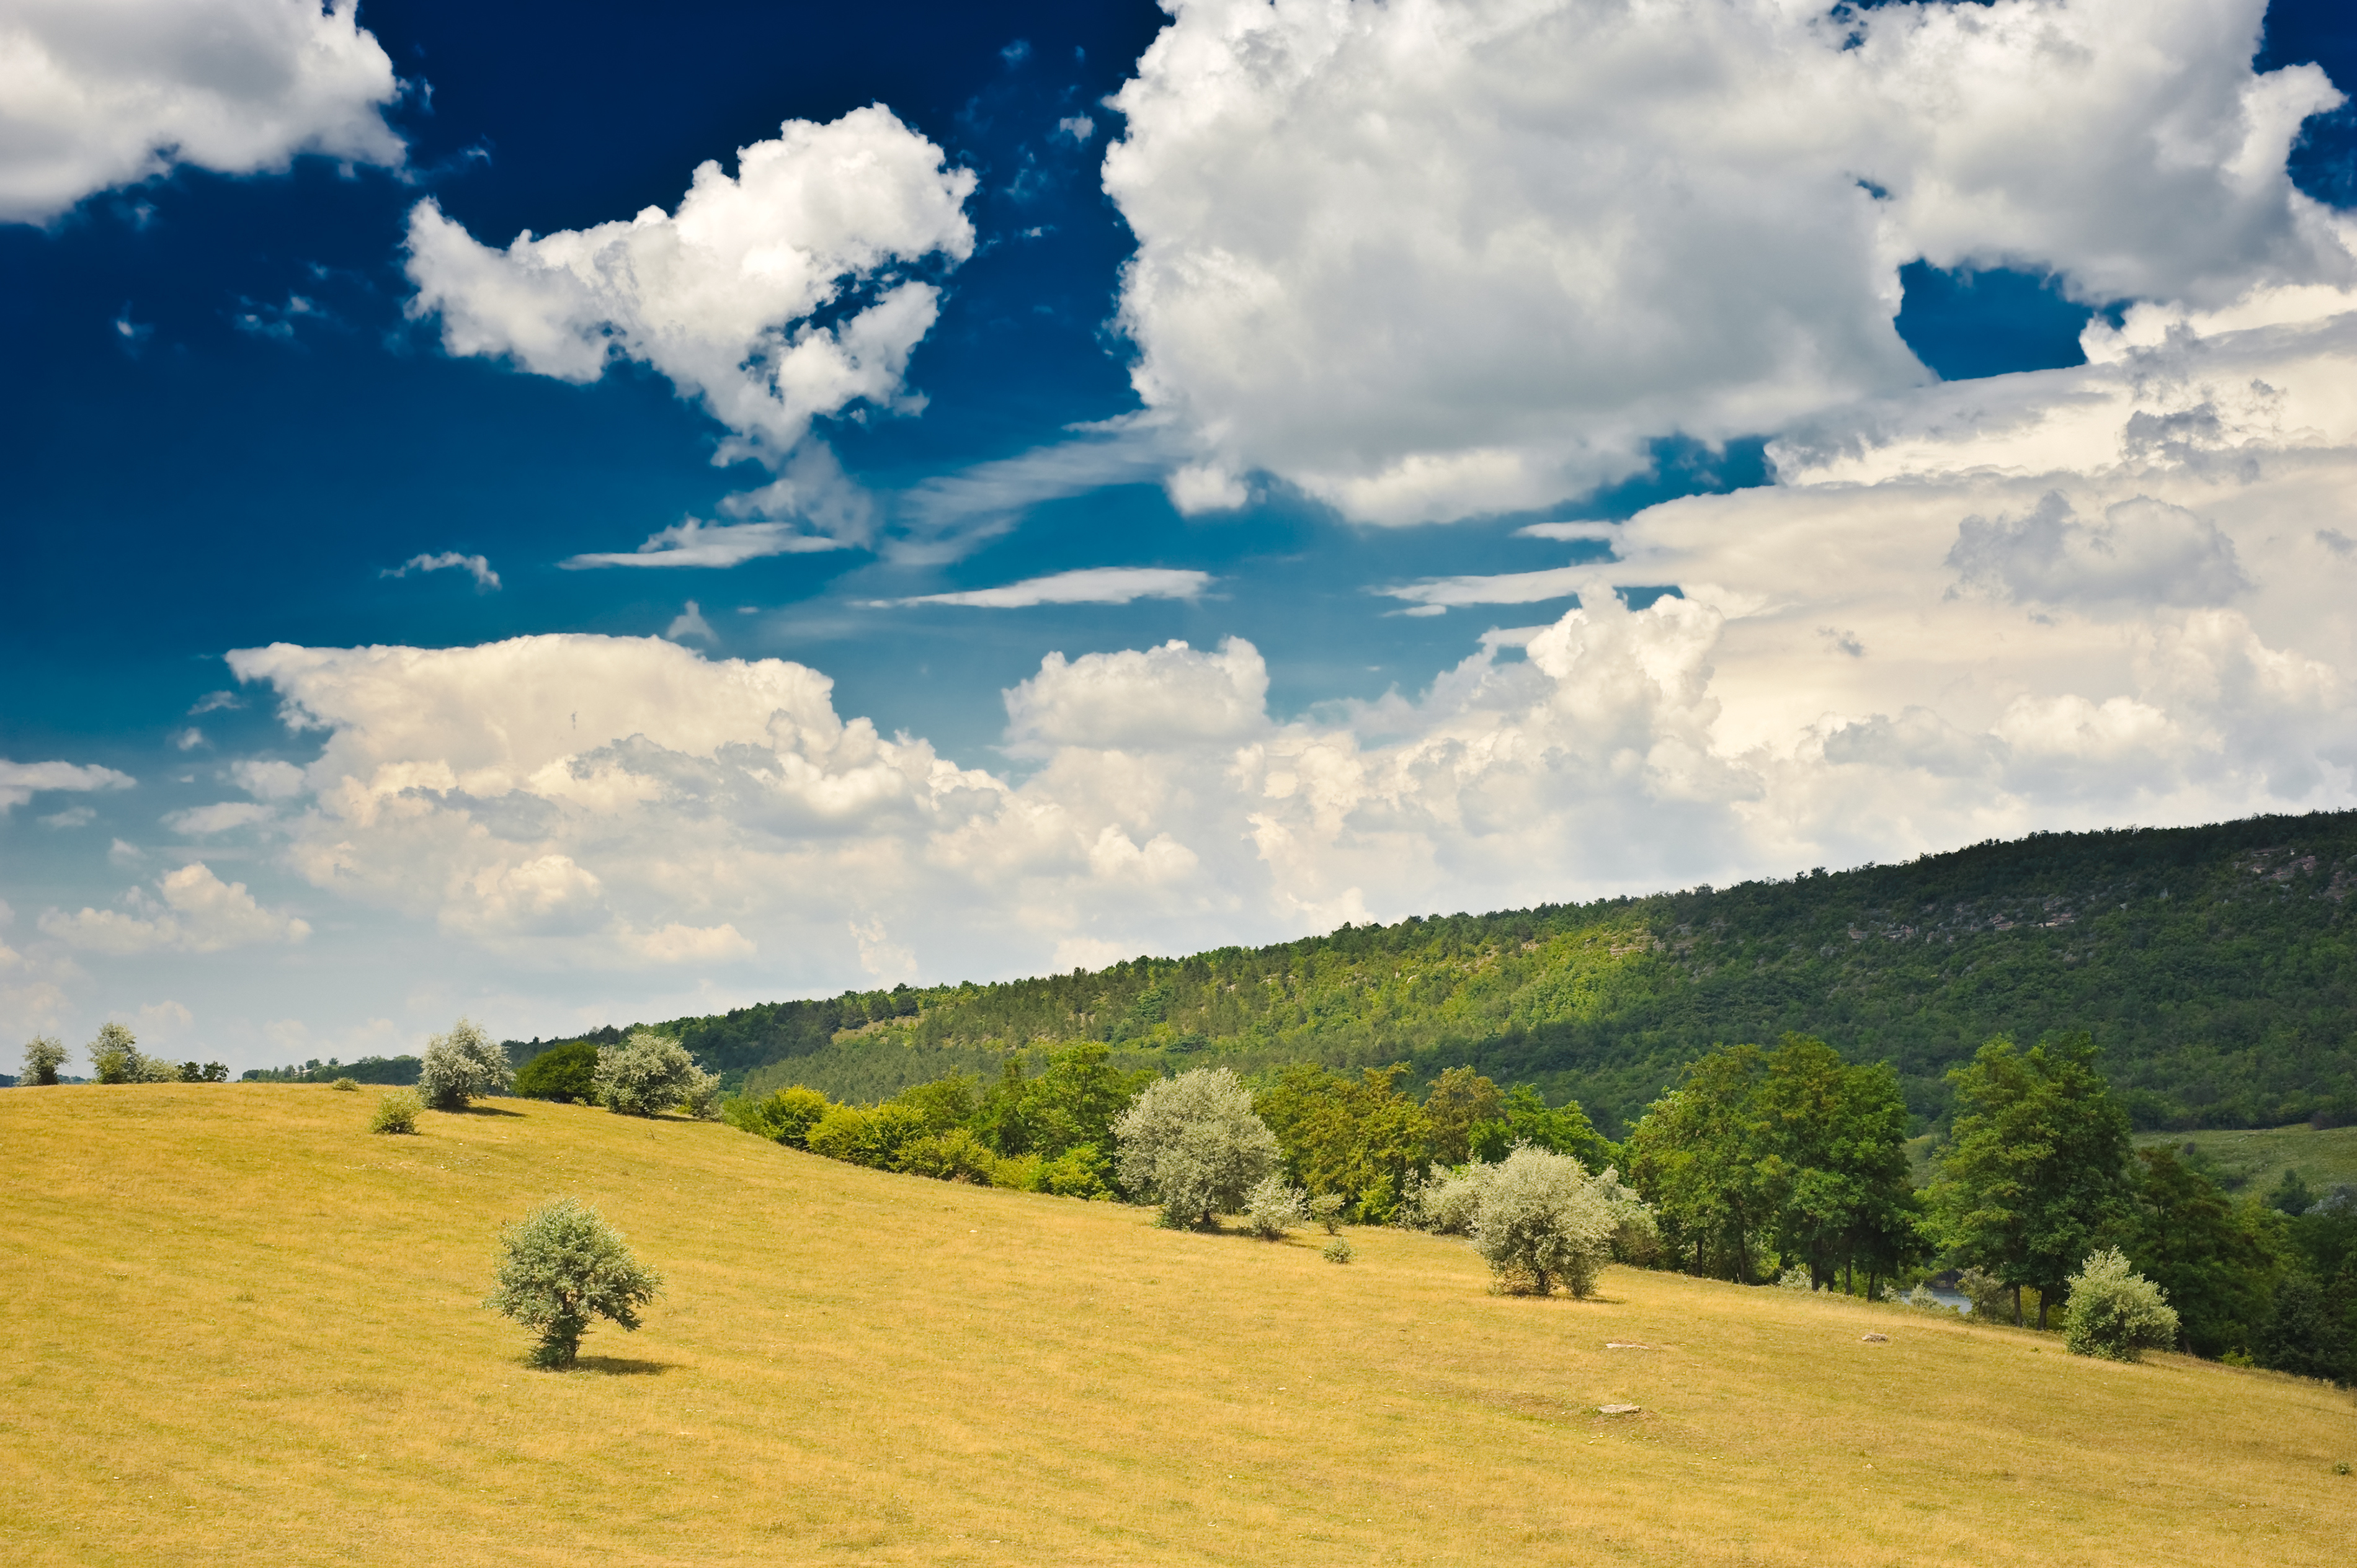 Moldova's forests are a huge draw